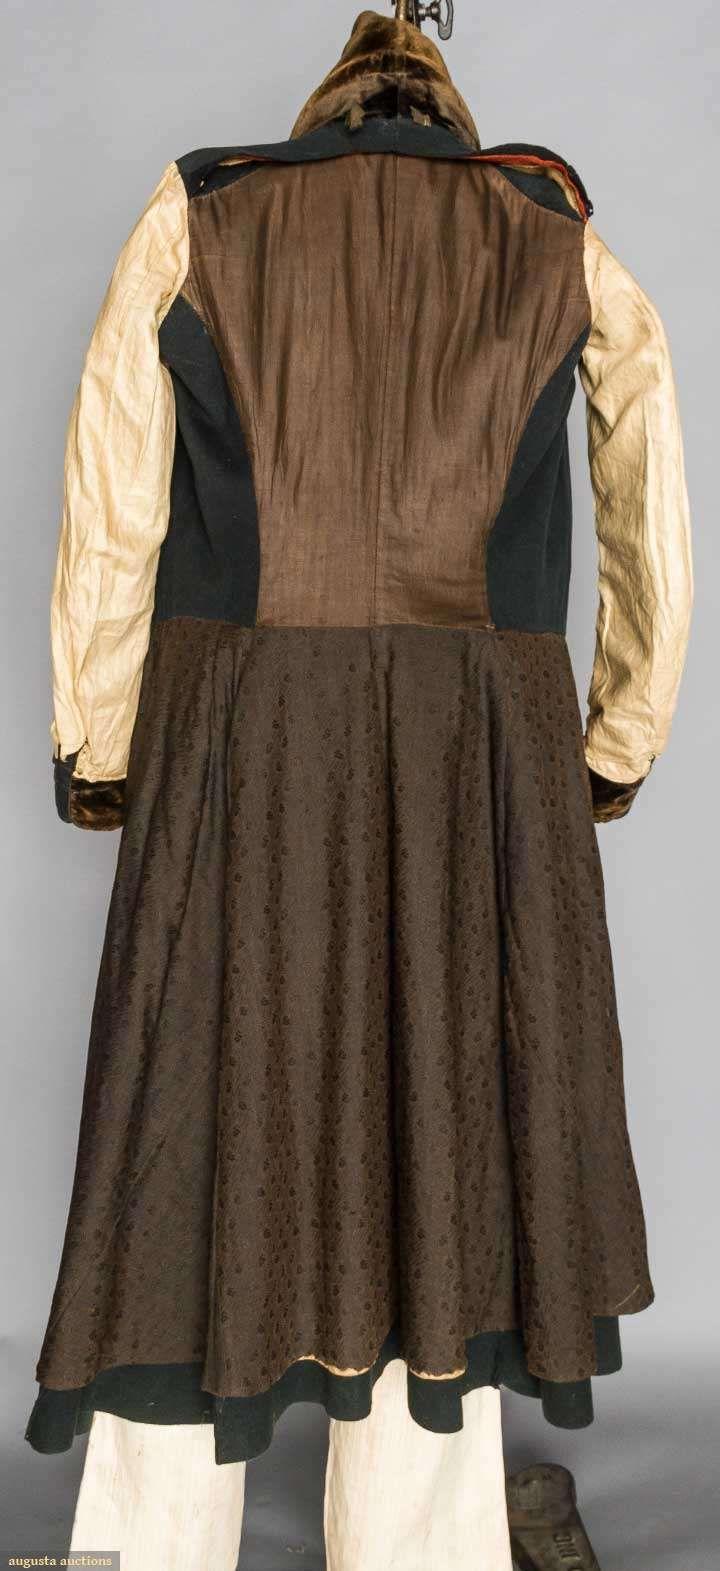 BOTTLE GREEN GREATCOAT/SURTOUT, HAVERHILL, MA, 1820s - Augusta Auctions